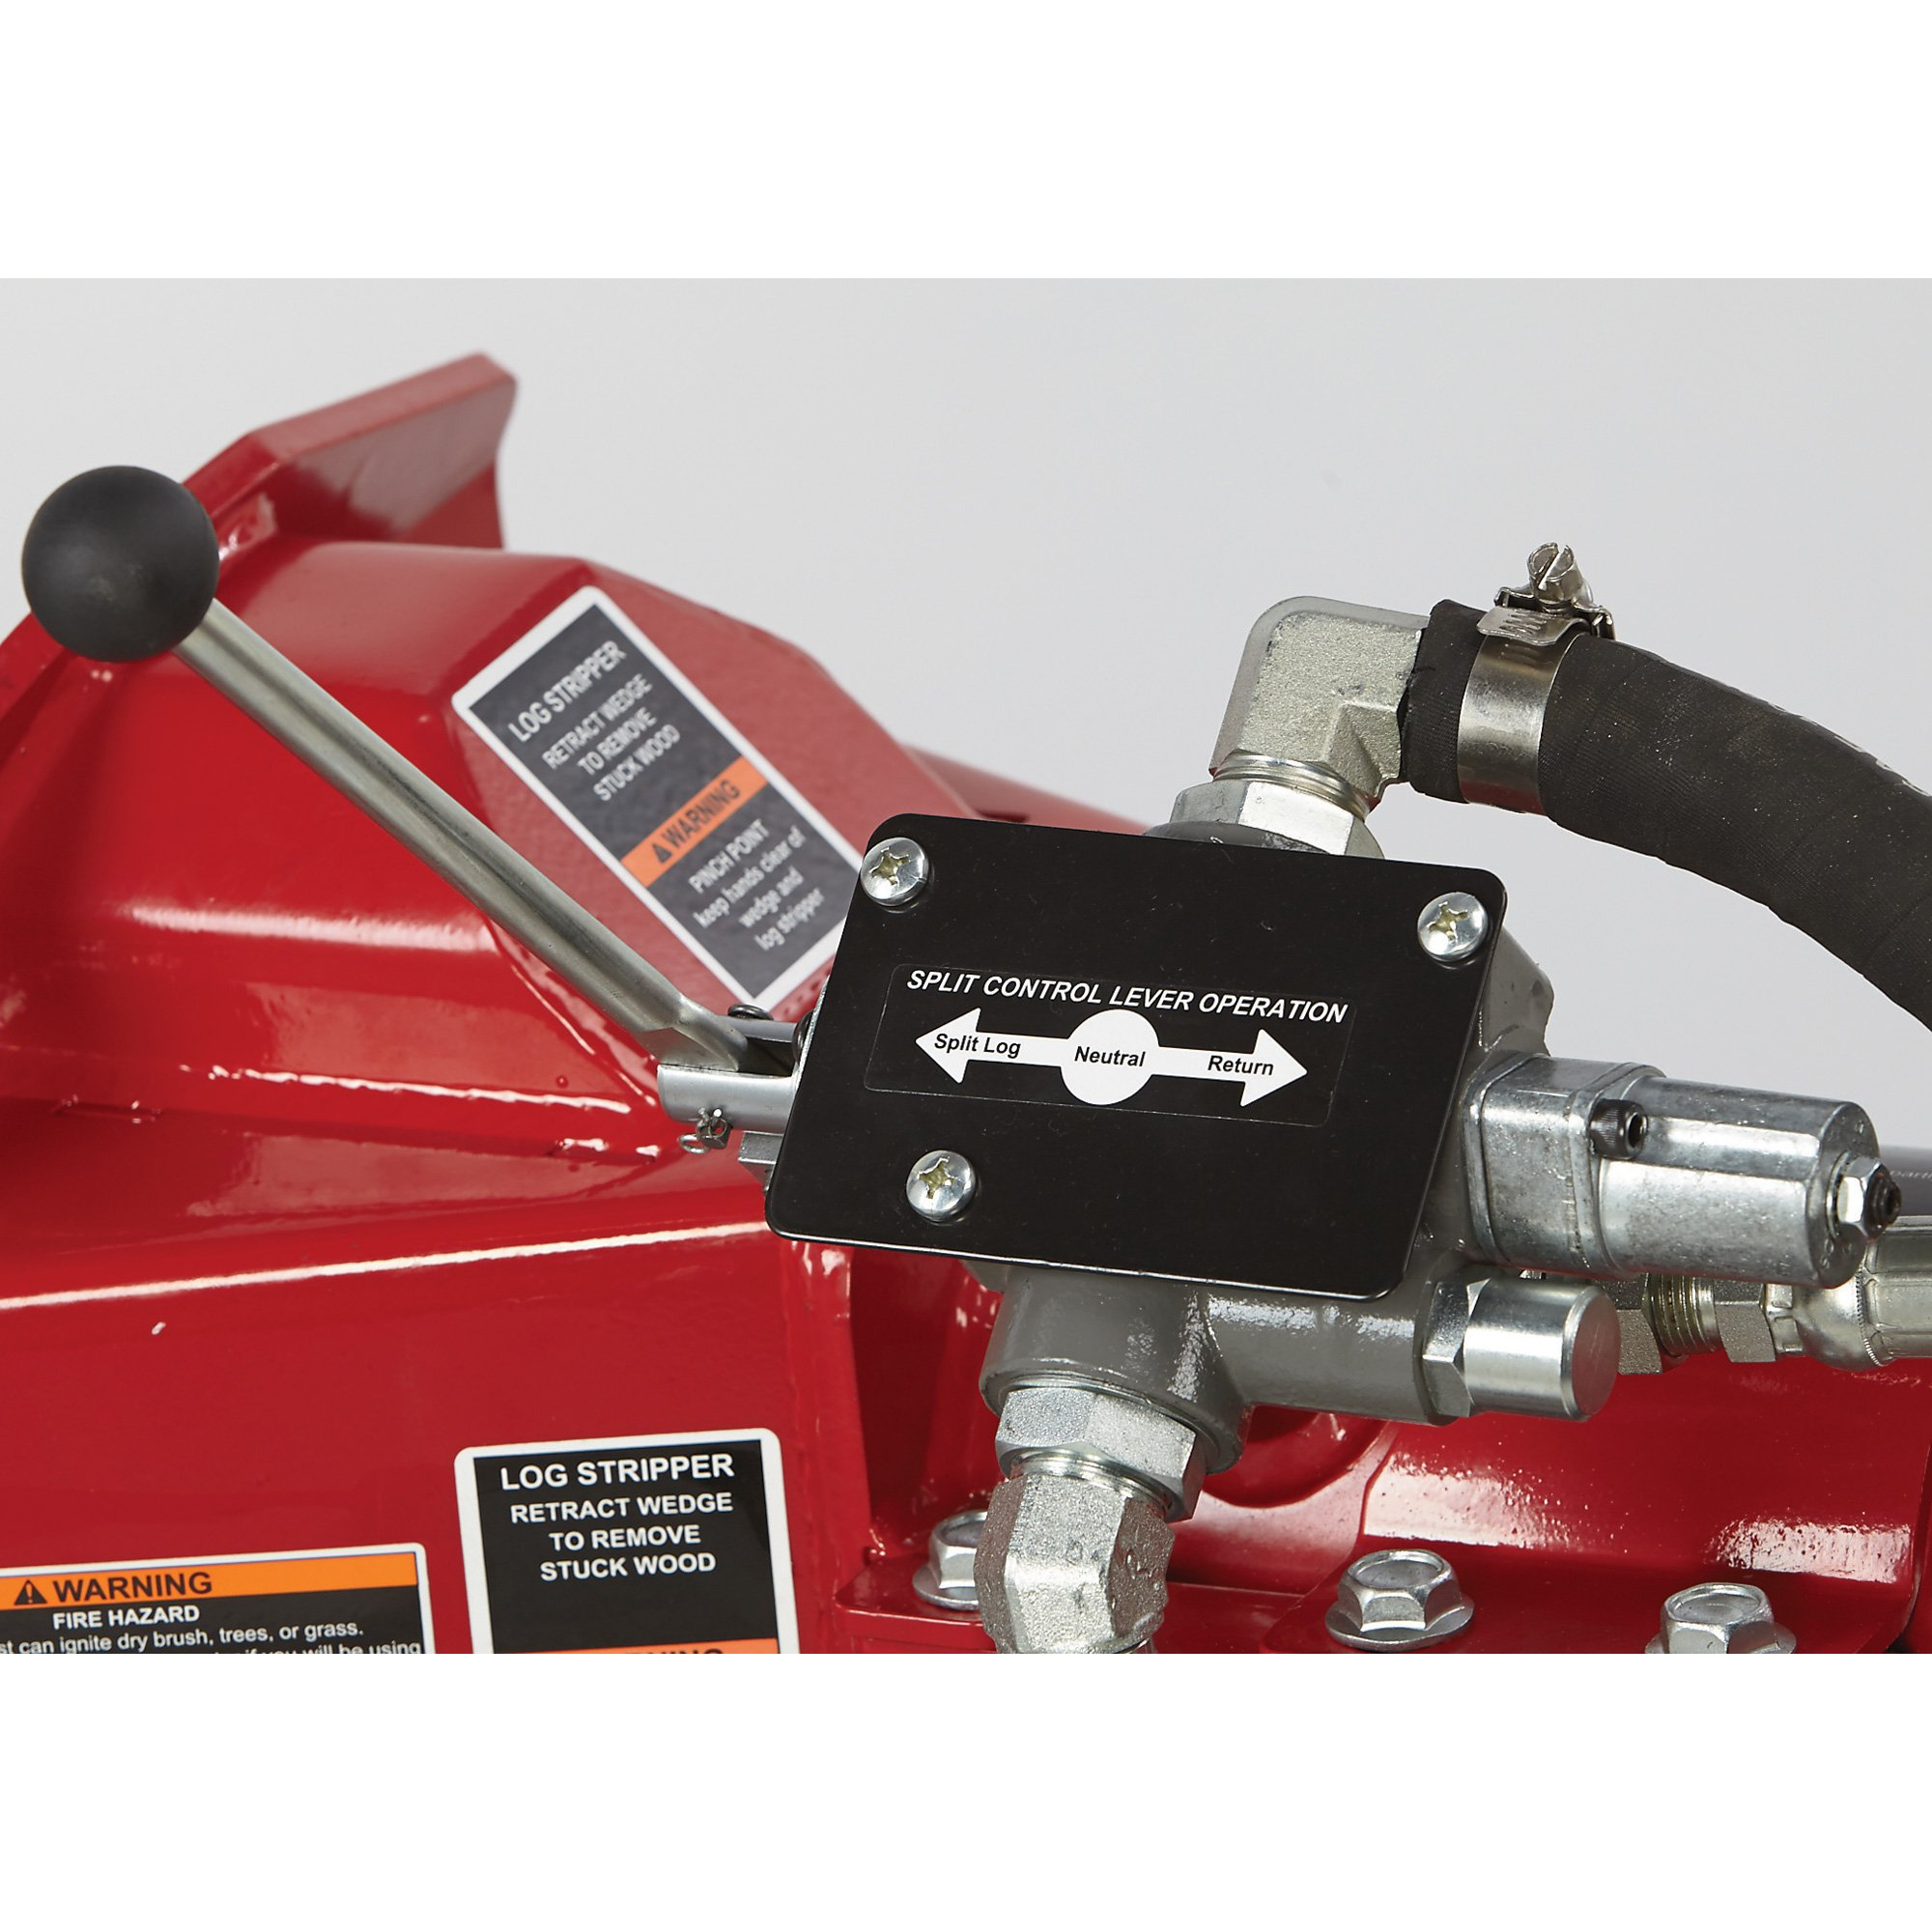 NorthStar Horizontal/Vertical Log Splitter - 30-Ton, 200cc Honda GX200 Engine